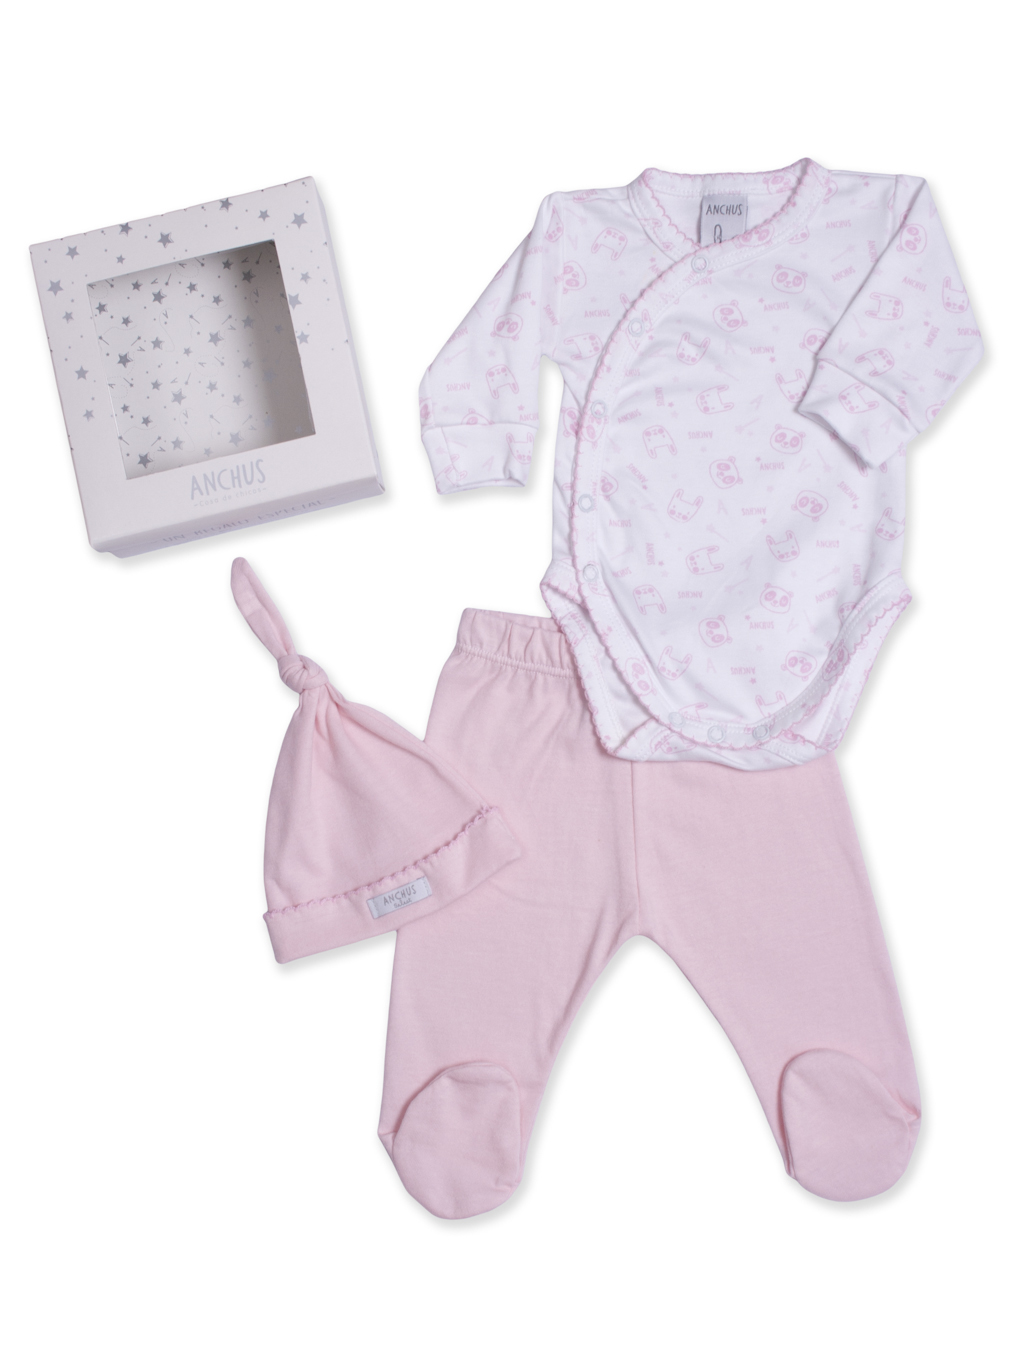 Conj body ranita exclusivo Rosa ML